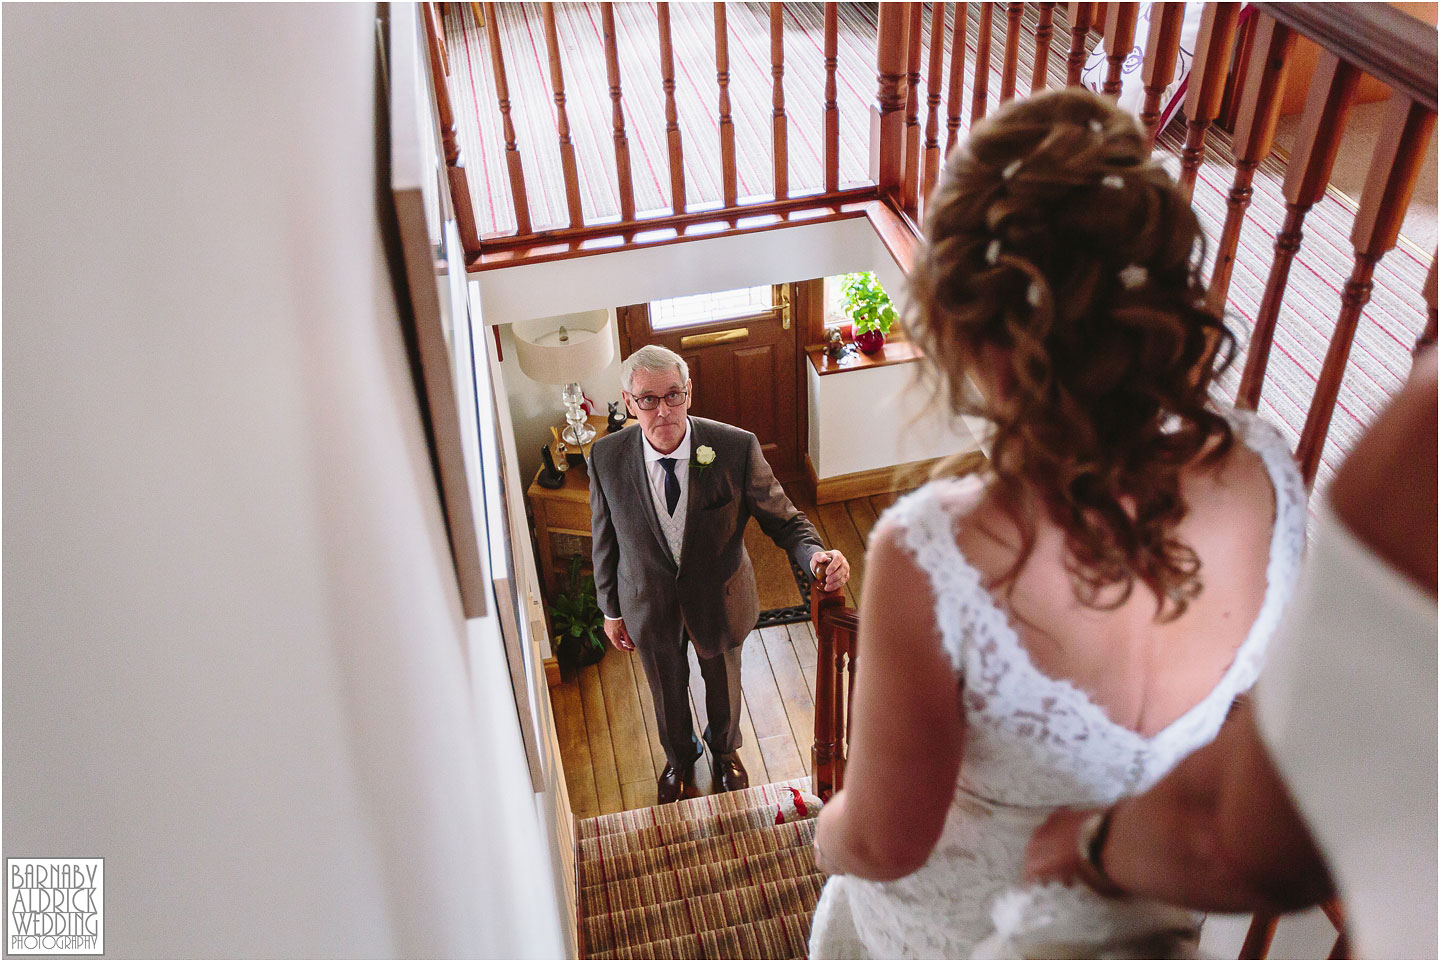 Father and Daughter Wedding day photograph